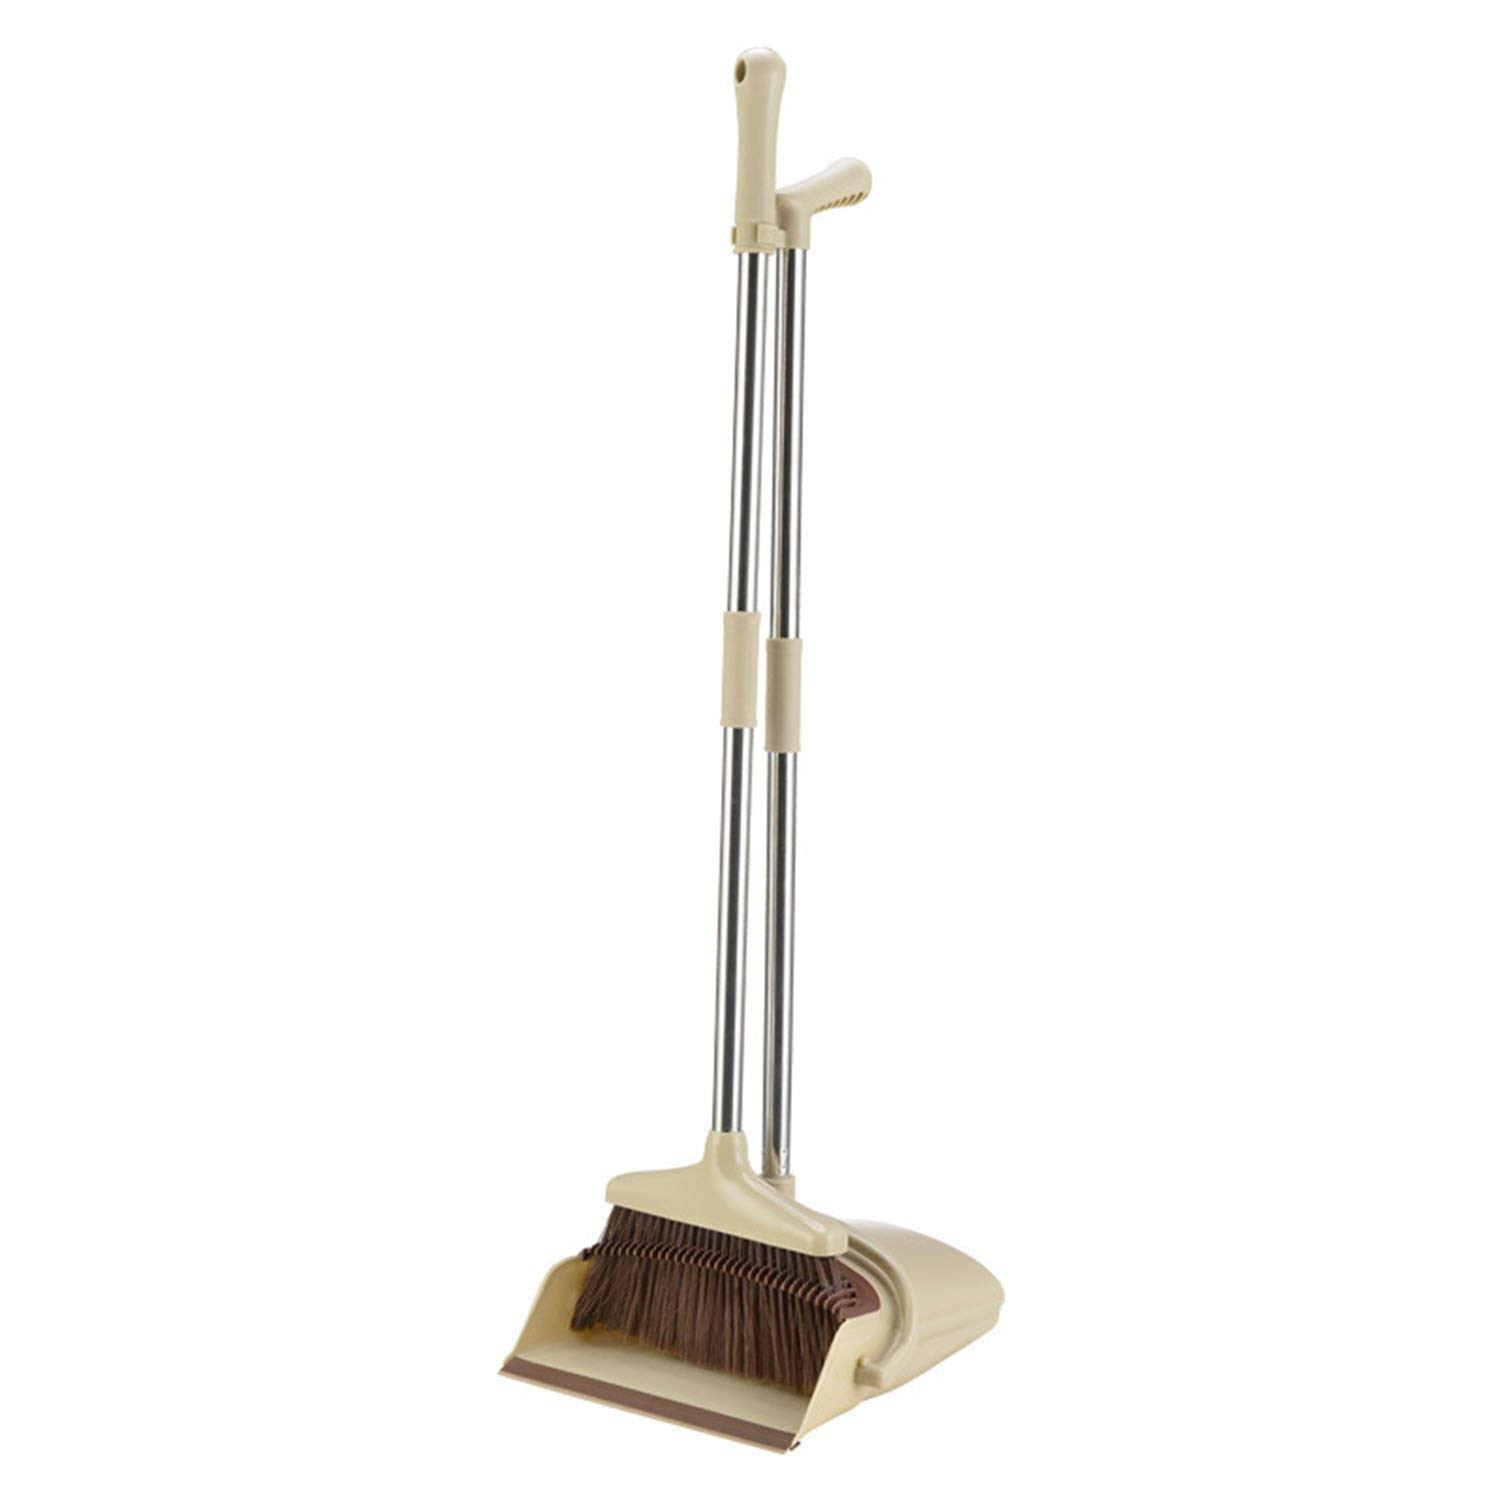 Broom and Dustpan Set,Windproof Broom Dustpan Set Combination Home Sweeping Artifact Single Broom Fur Hair Filter Hair for Sweeping Home, Lobby and Office